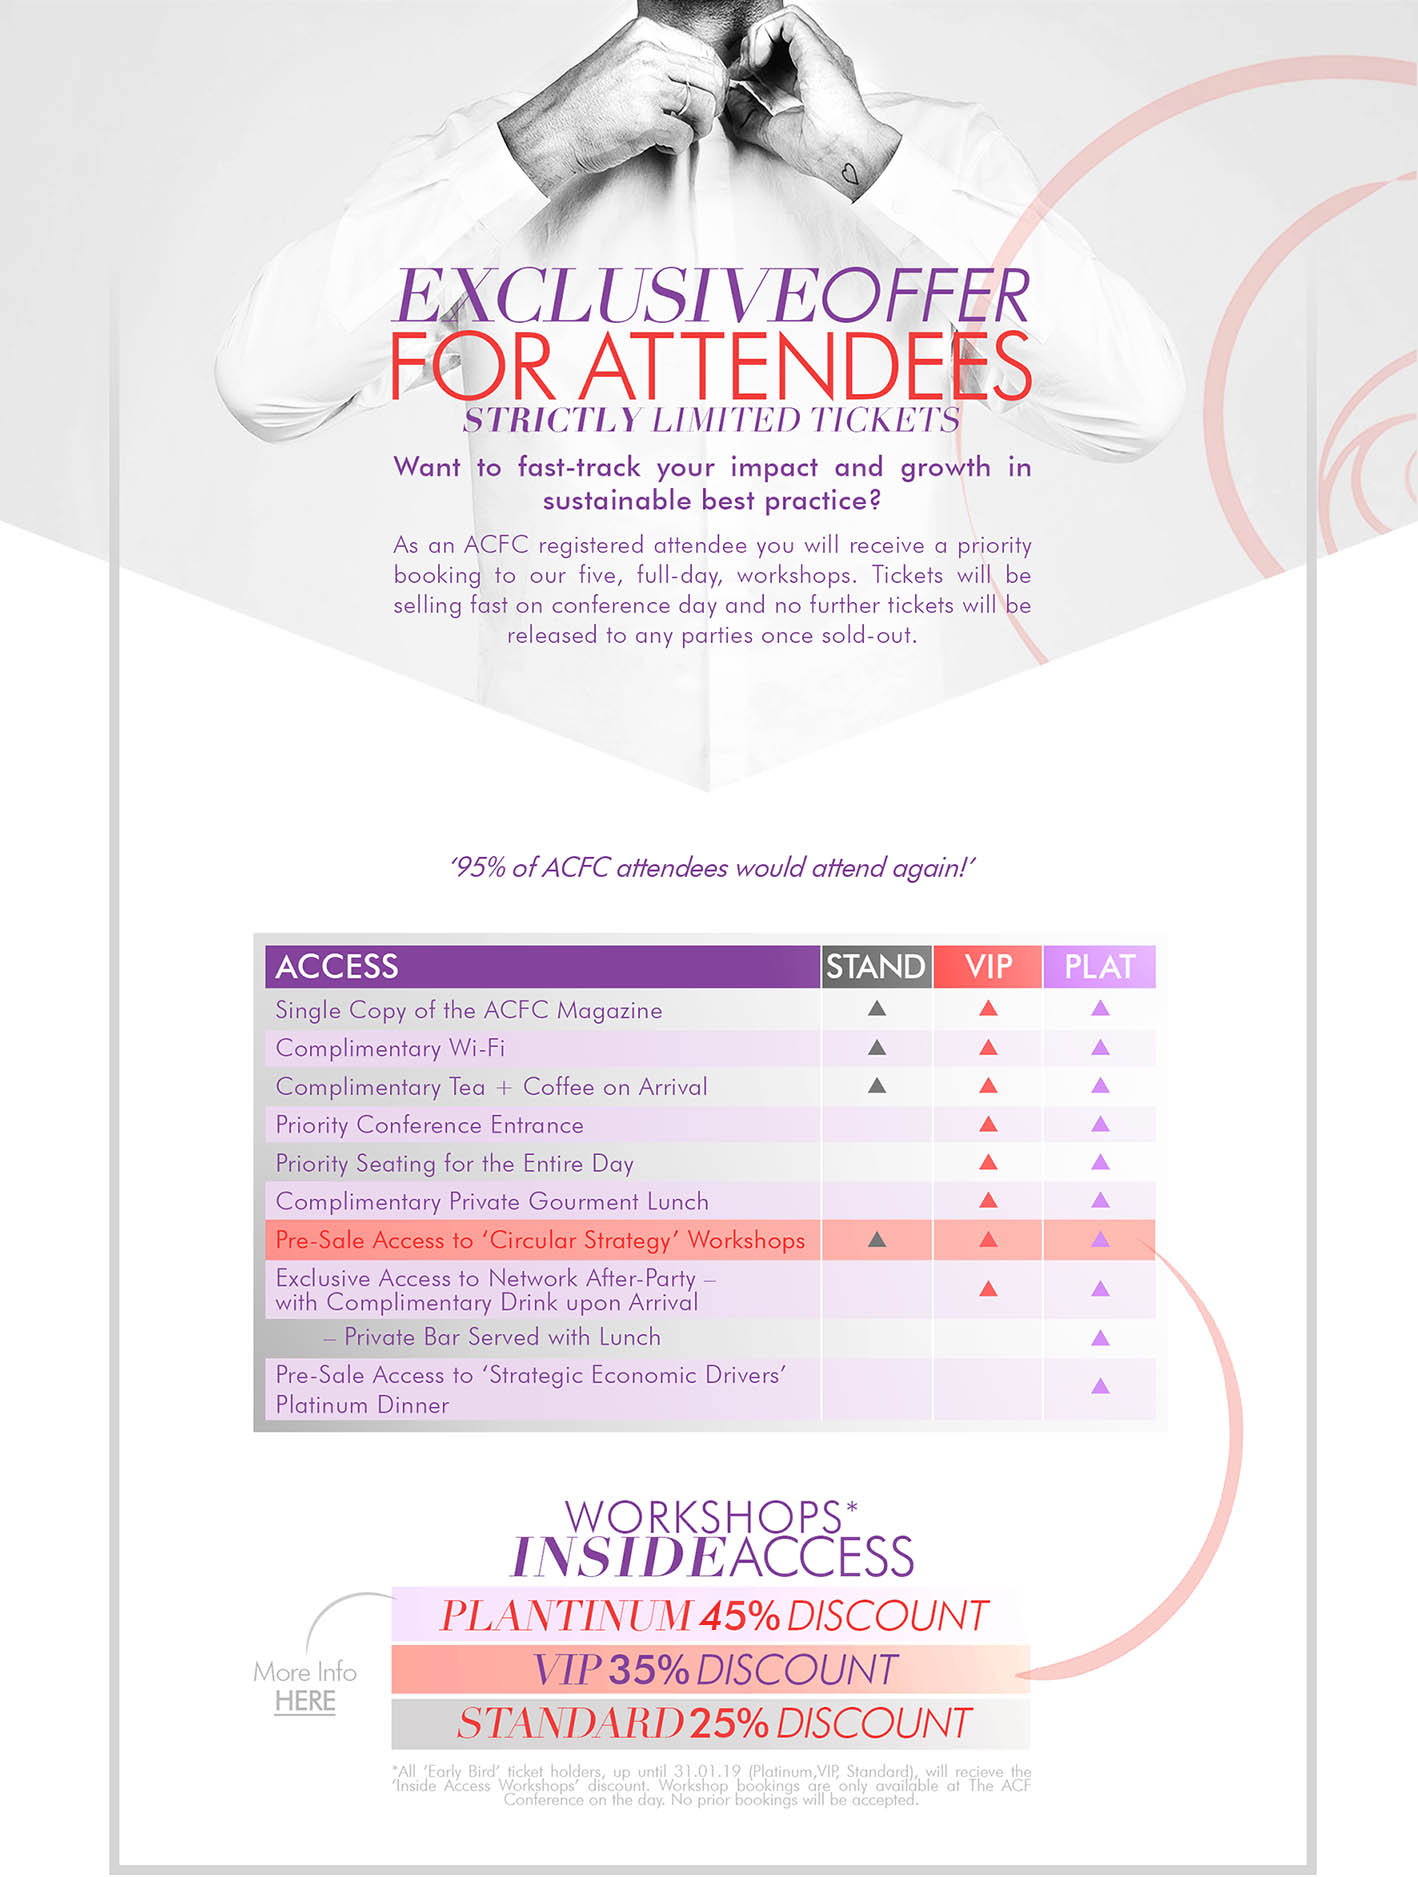 ACFC exclusive access workshops circular fashion discount limited